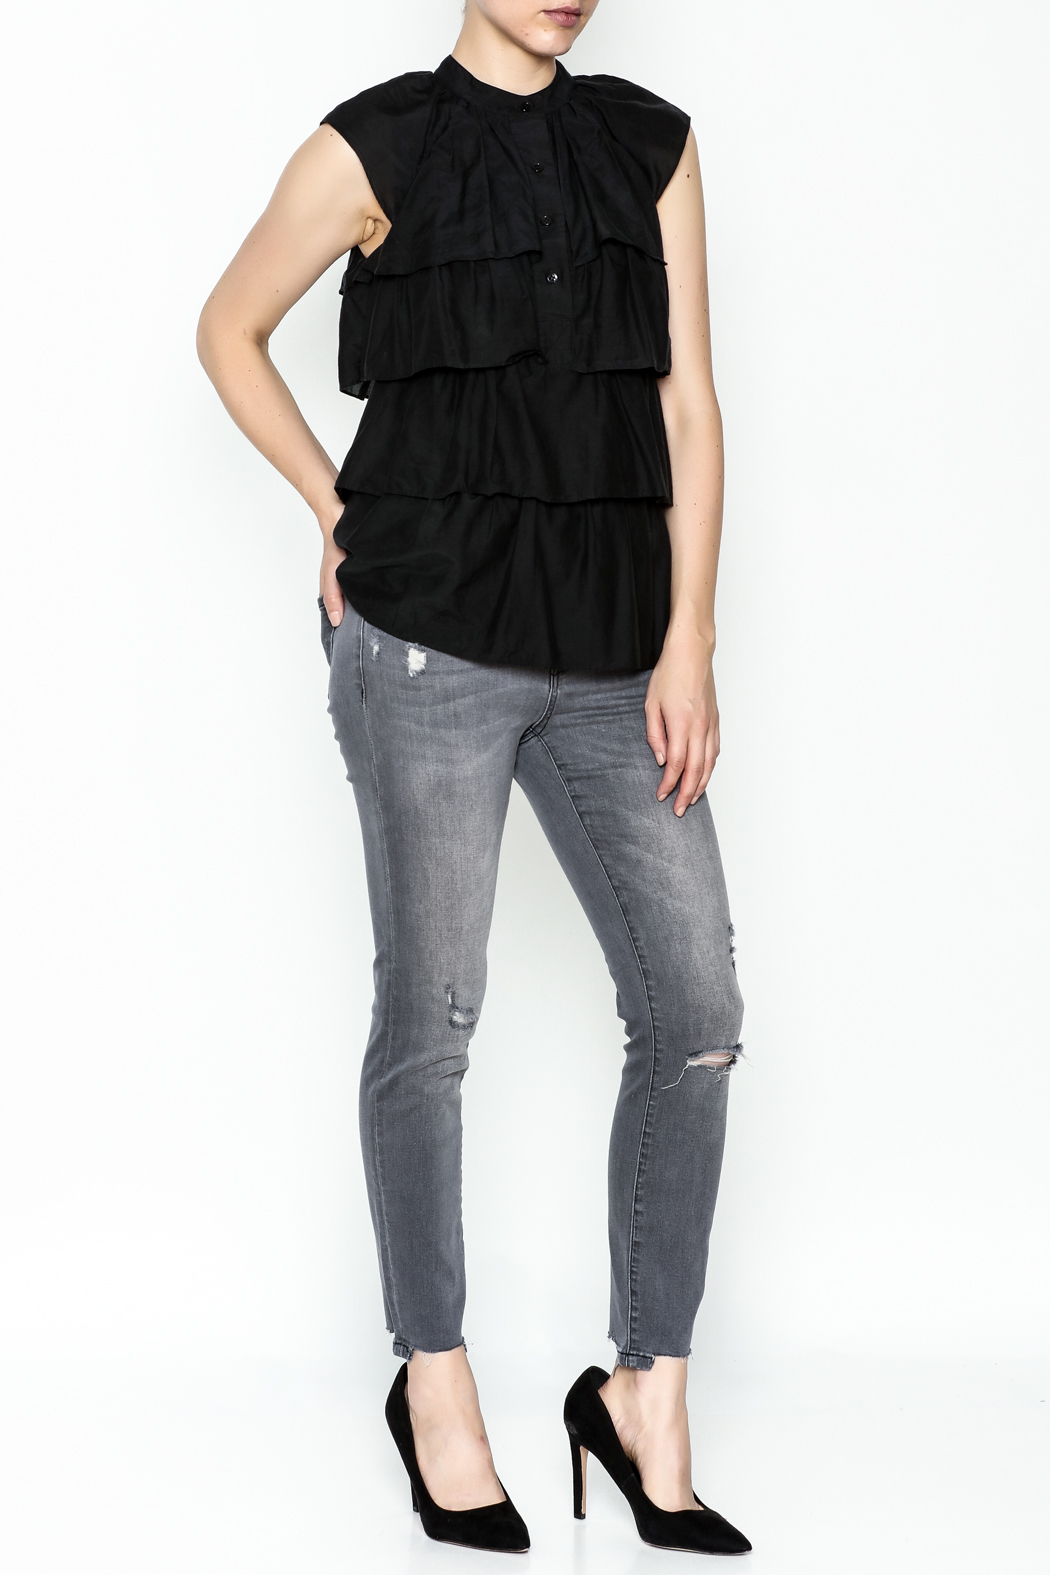 BCBG Max Azria Ruffled Black Blouse - Side Cropped Image